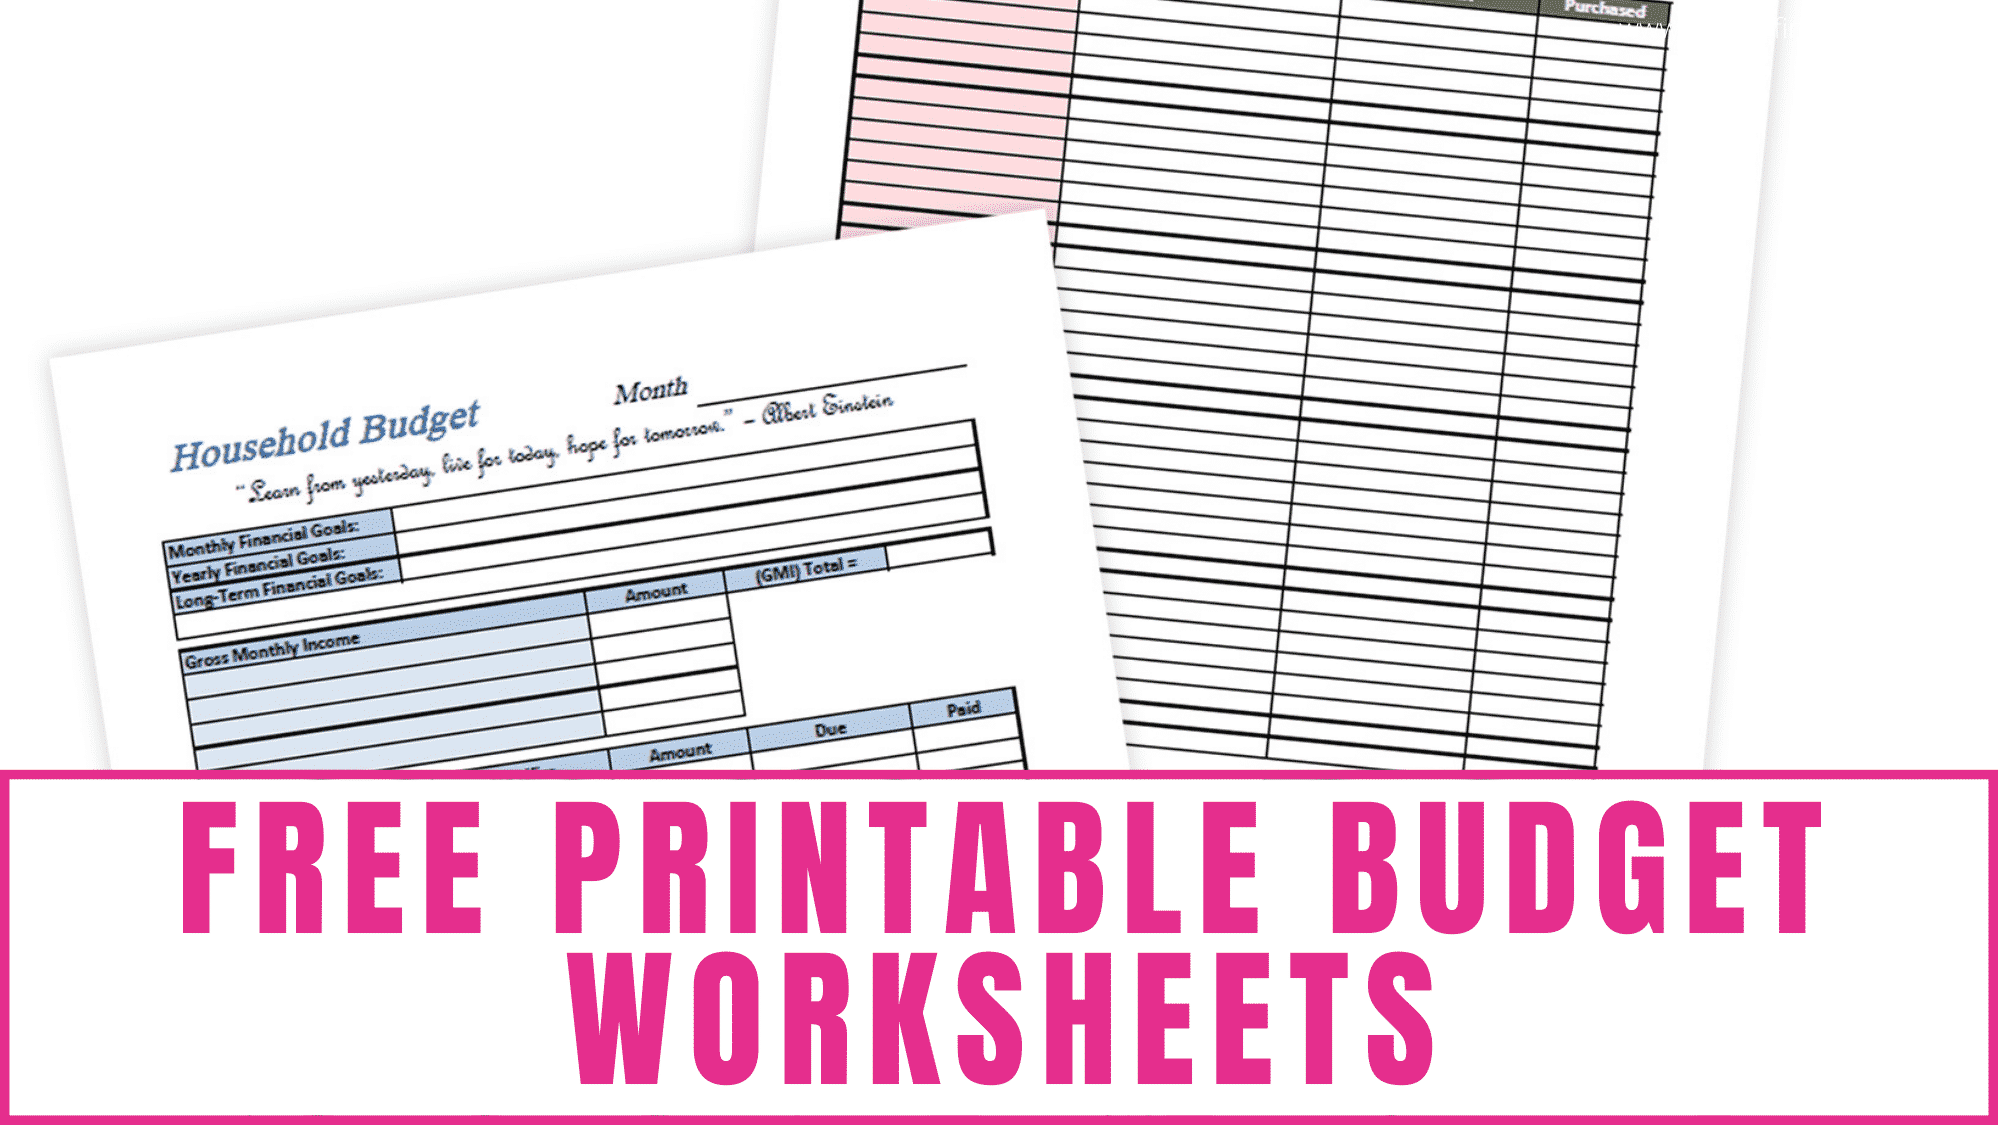 Need help with your finances? Learn how to budget your money using these simple yet effective free printable budget worksheets.